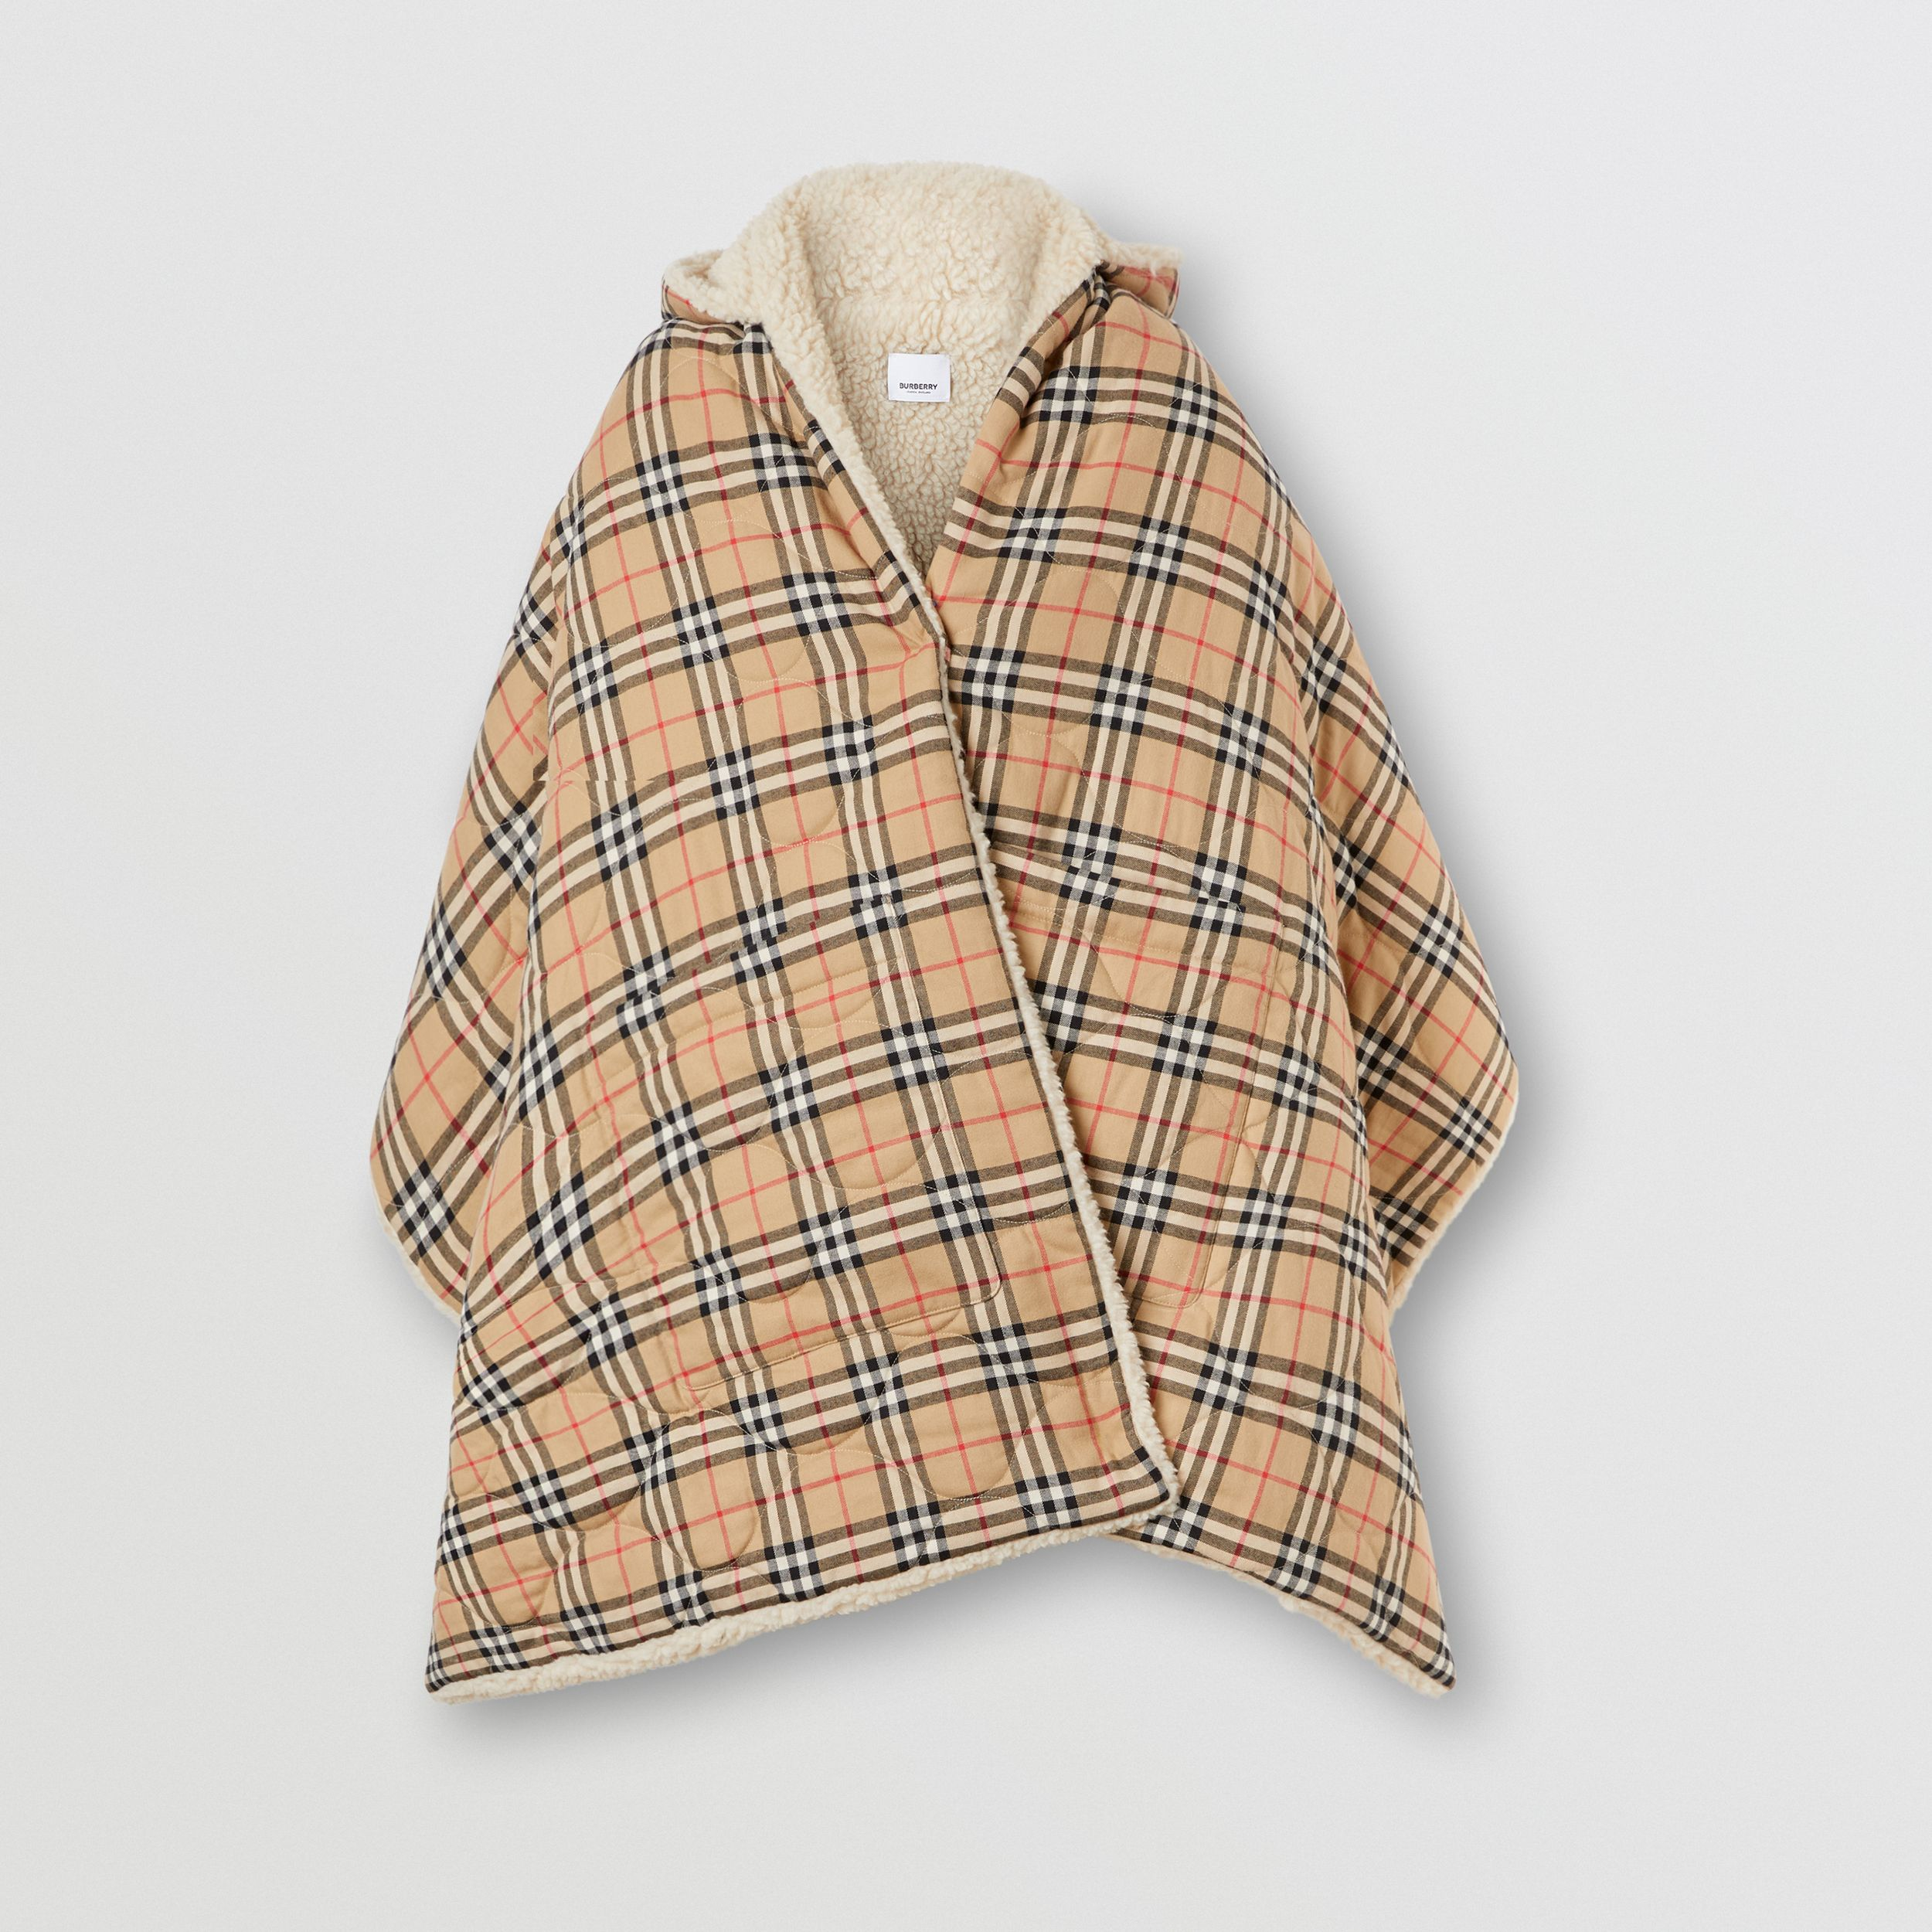 Fleece-lined Vintage Check Cotton Hooded Cape in Camel - Women | Burberry - 4